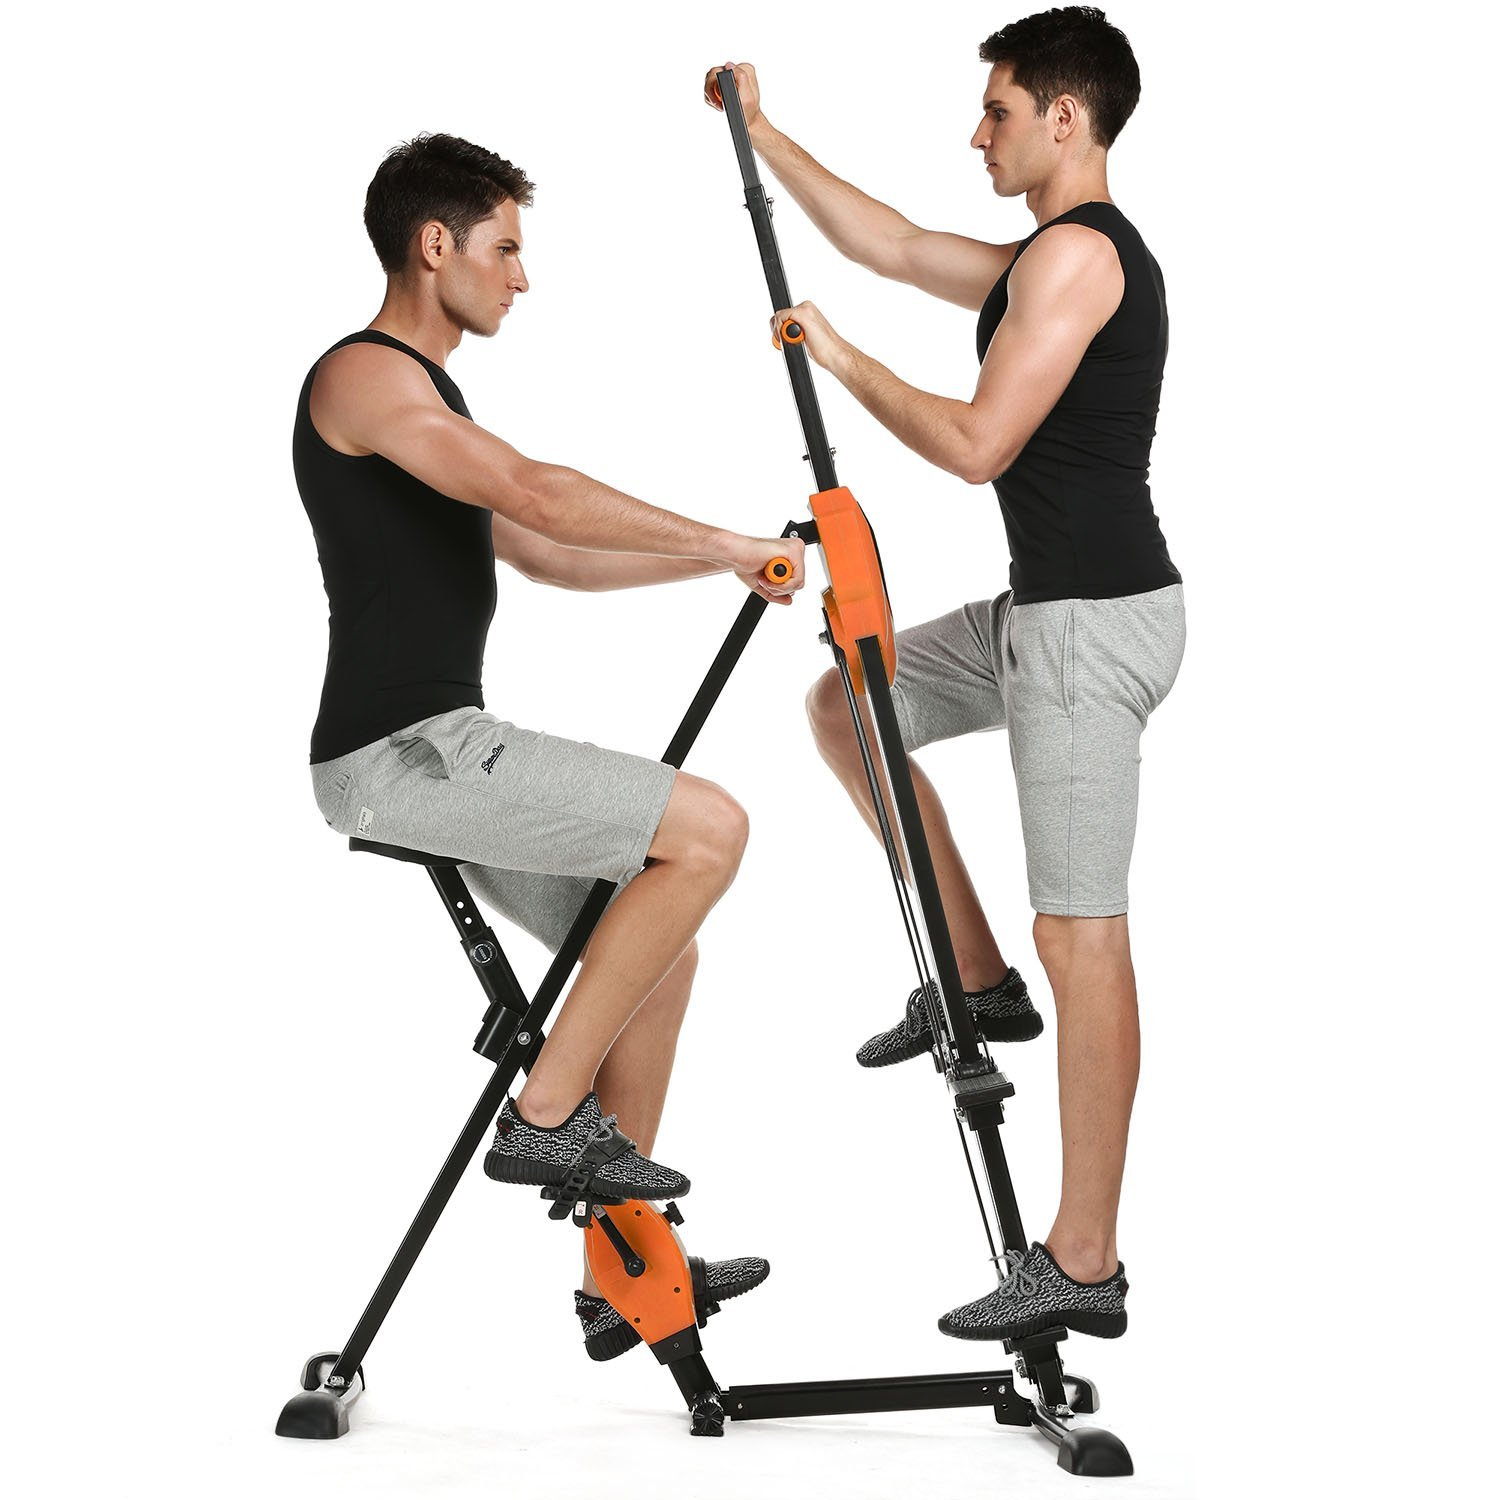 Kepteen Vertical Climber Folding 2 in 1 Climbing Stepper Home Gym Exercise Machine Exercise Bike for Home Body Trainer Stepper Cardio Workout Training US Stock